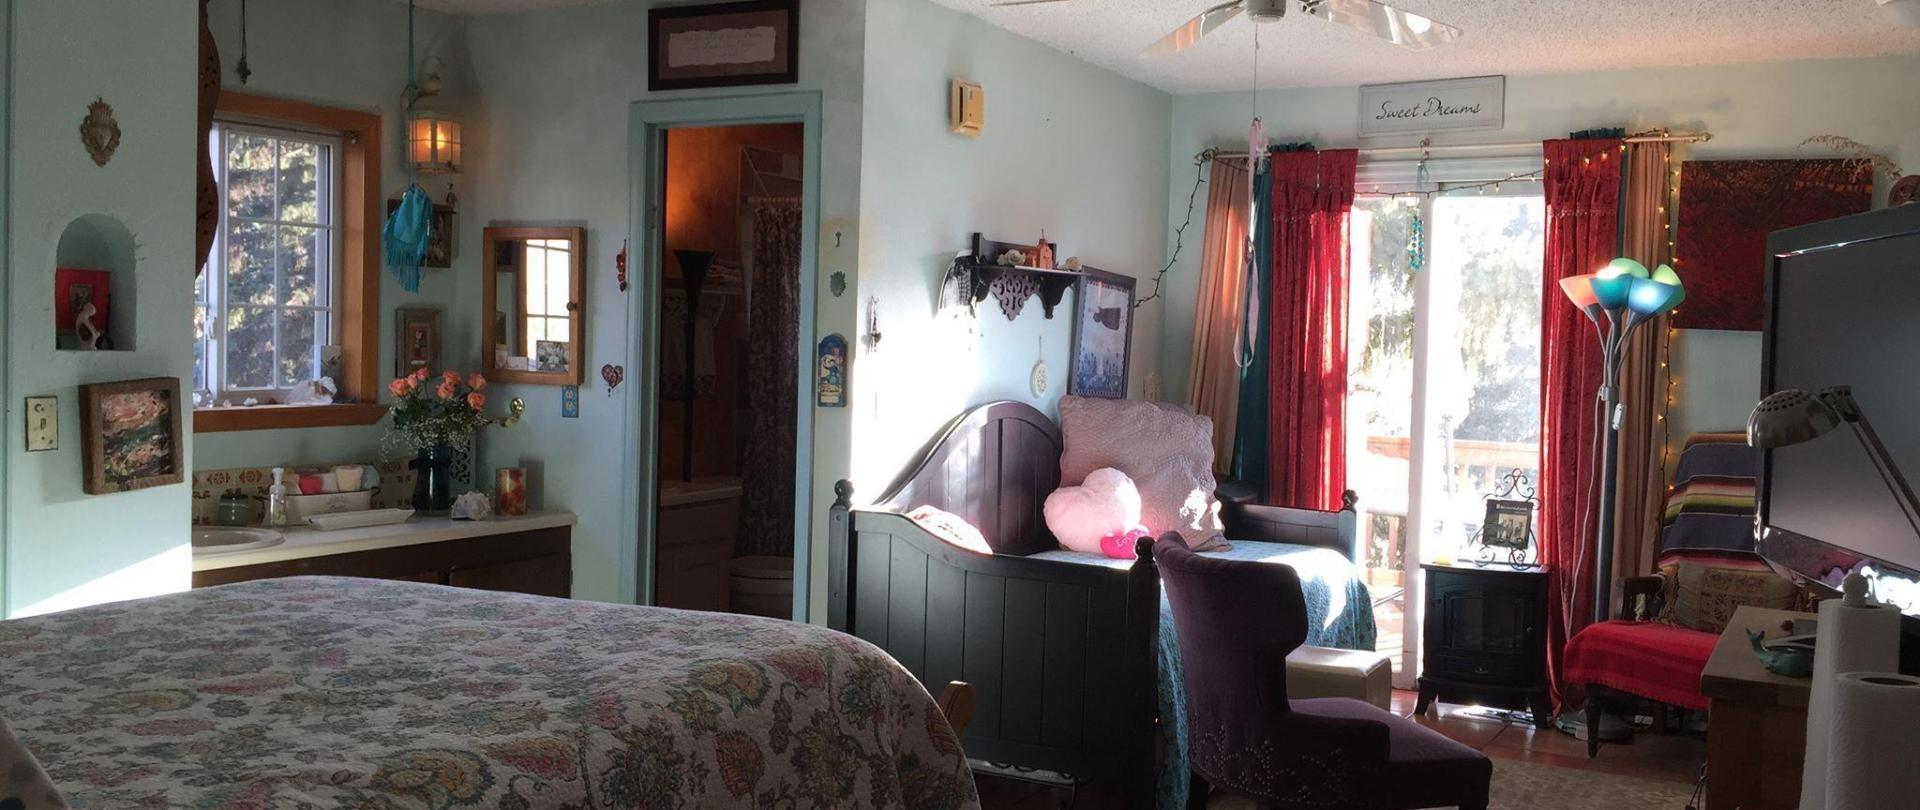 Mystic Portal Bed and Breakfast - Colorado Springs - USA